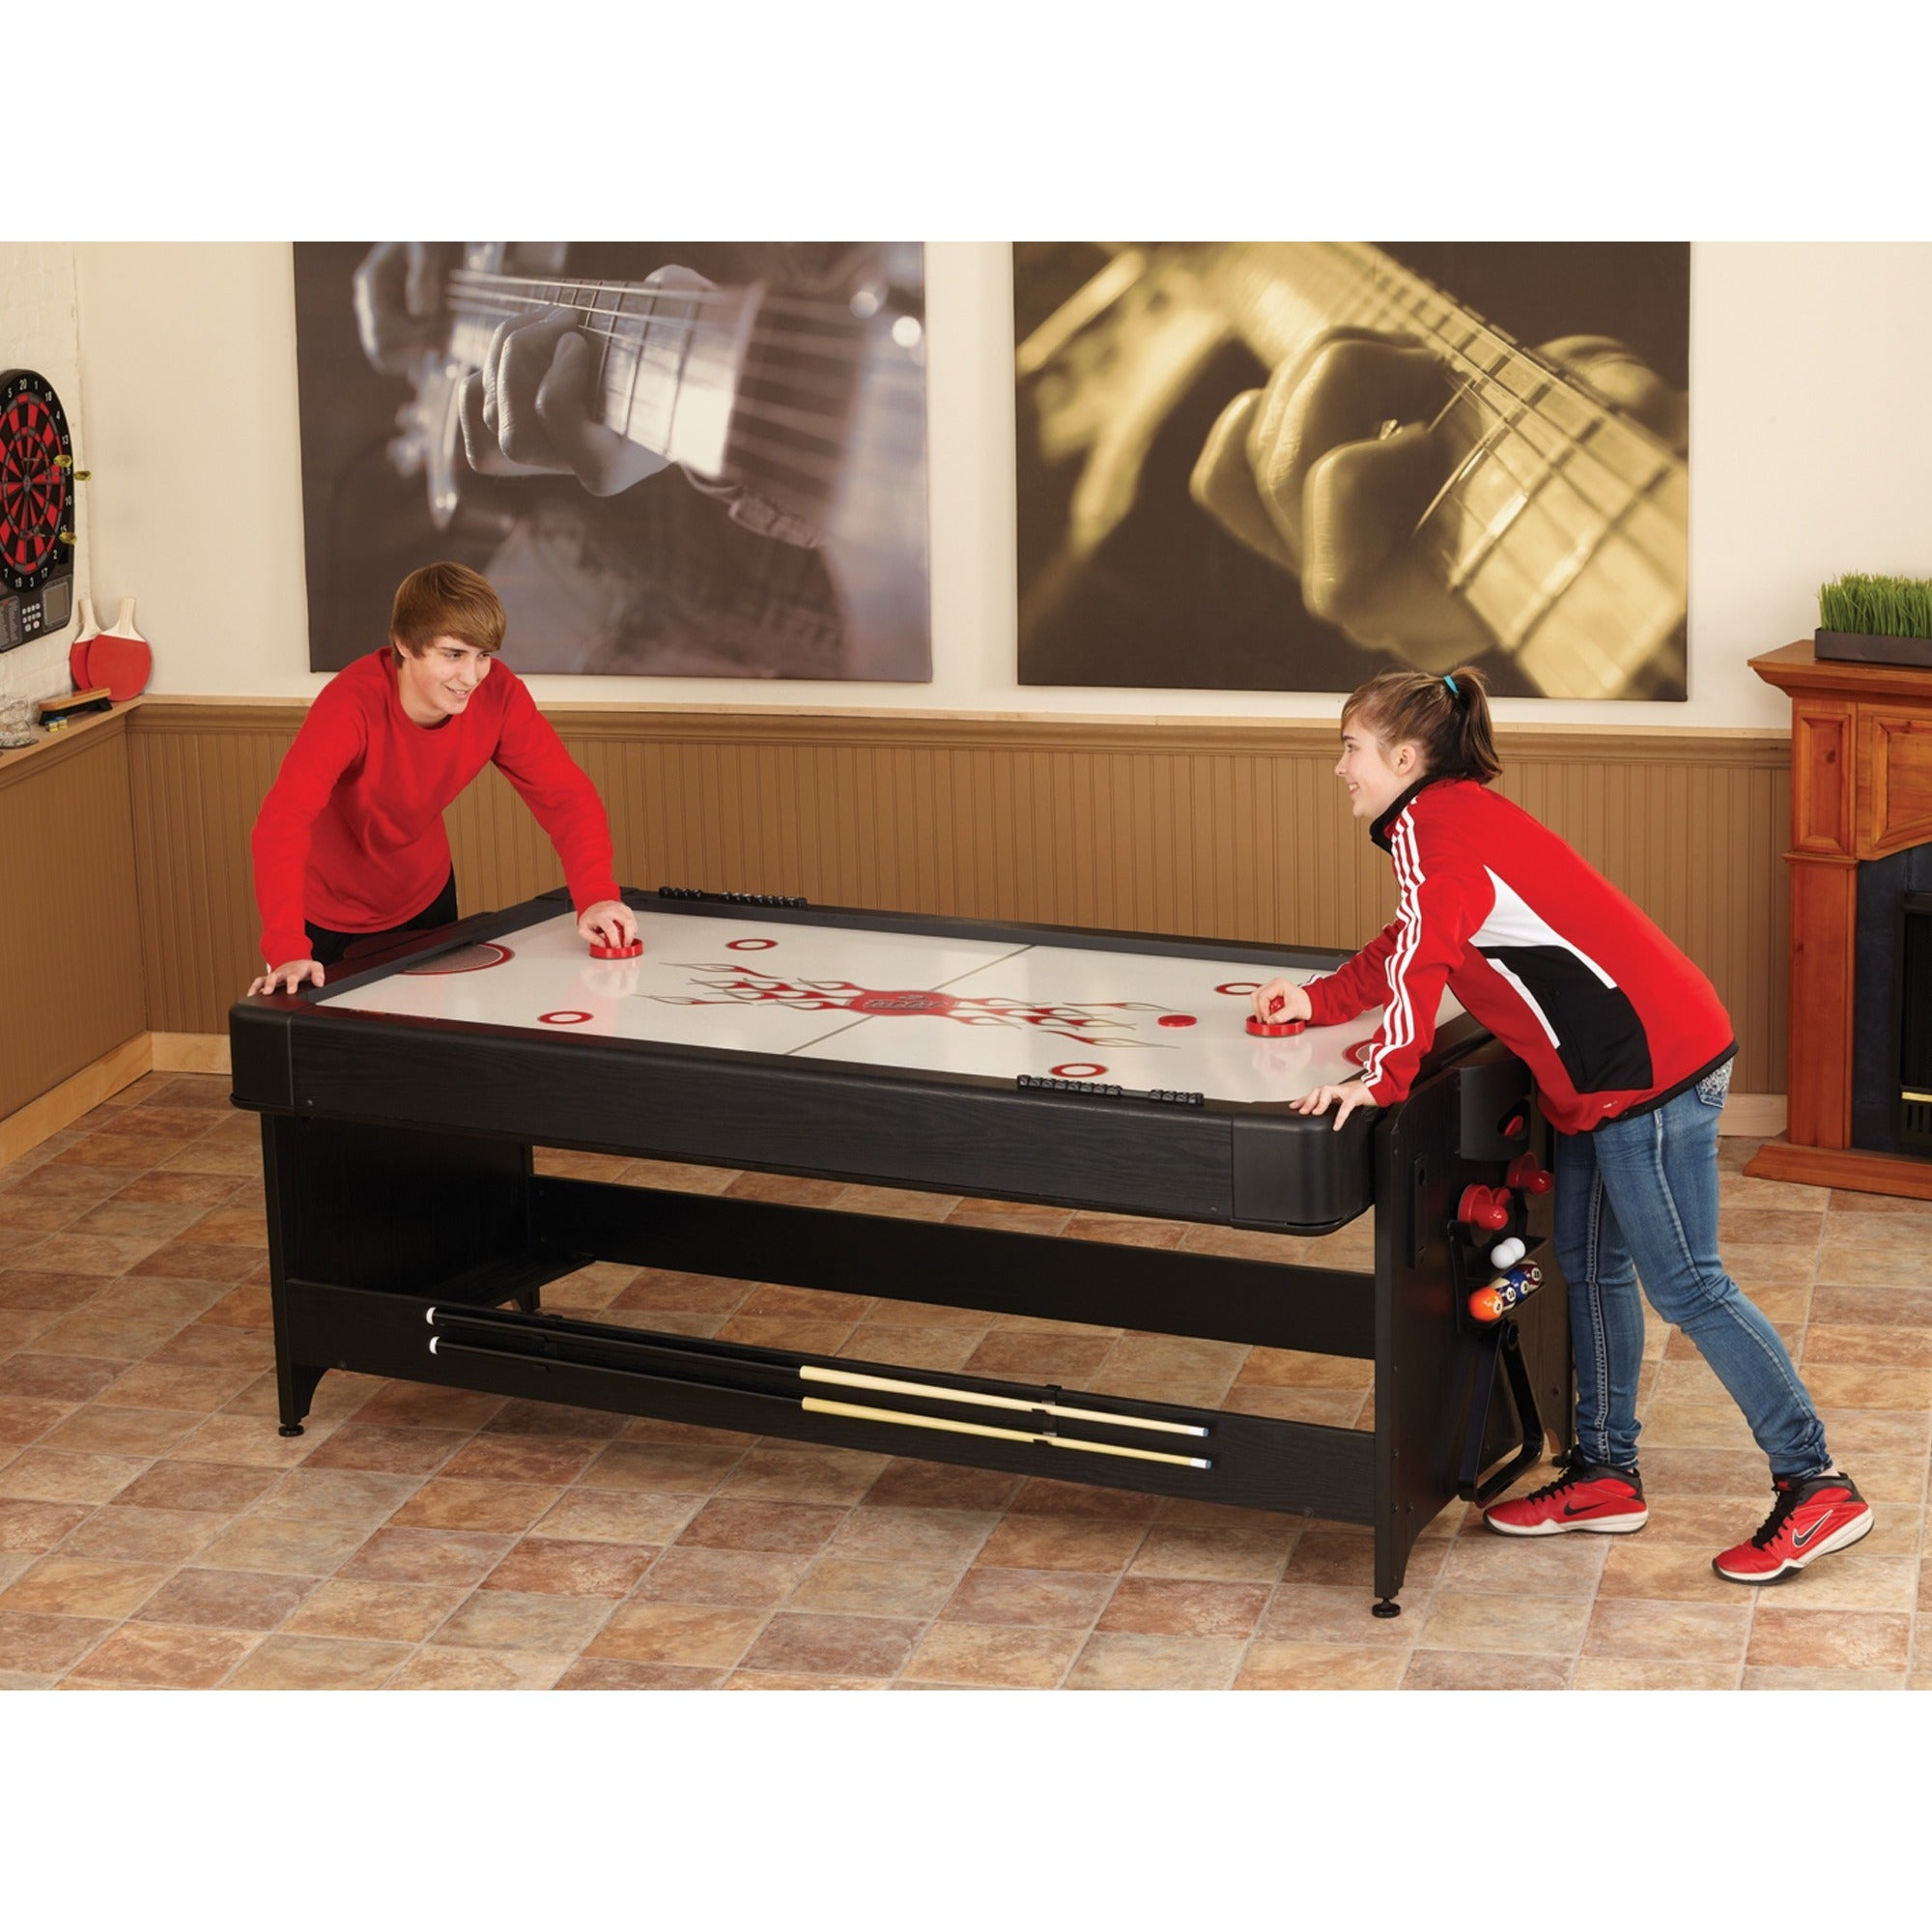 Exceptional Fat Cat 64 1010 Original 2 In 1 7 Foot Pockey Game Table (Billiards And Air  Hockey)   Black   Free Shipping Today   Overstock.com   18326519